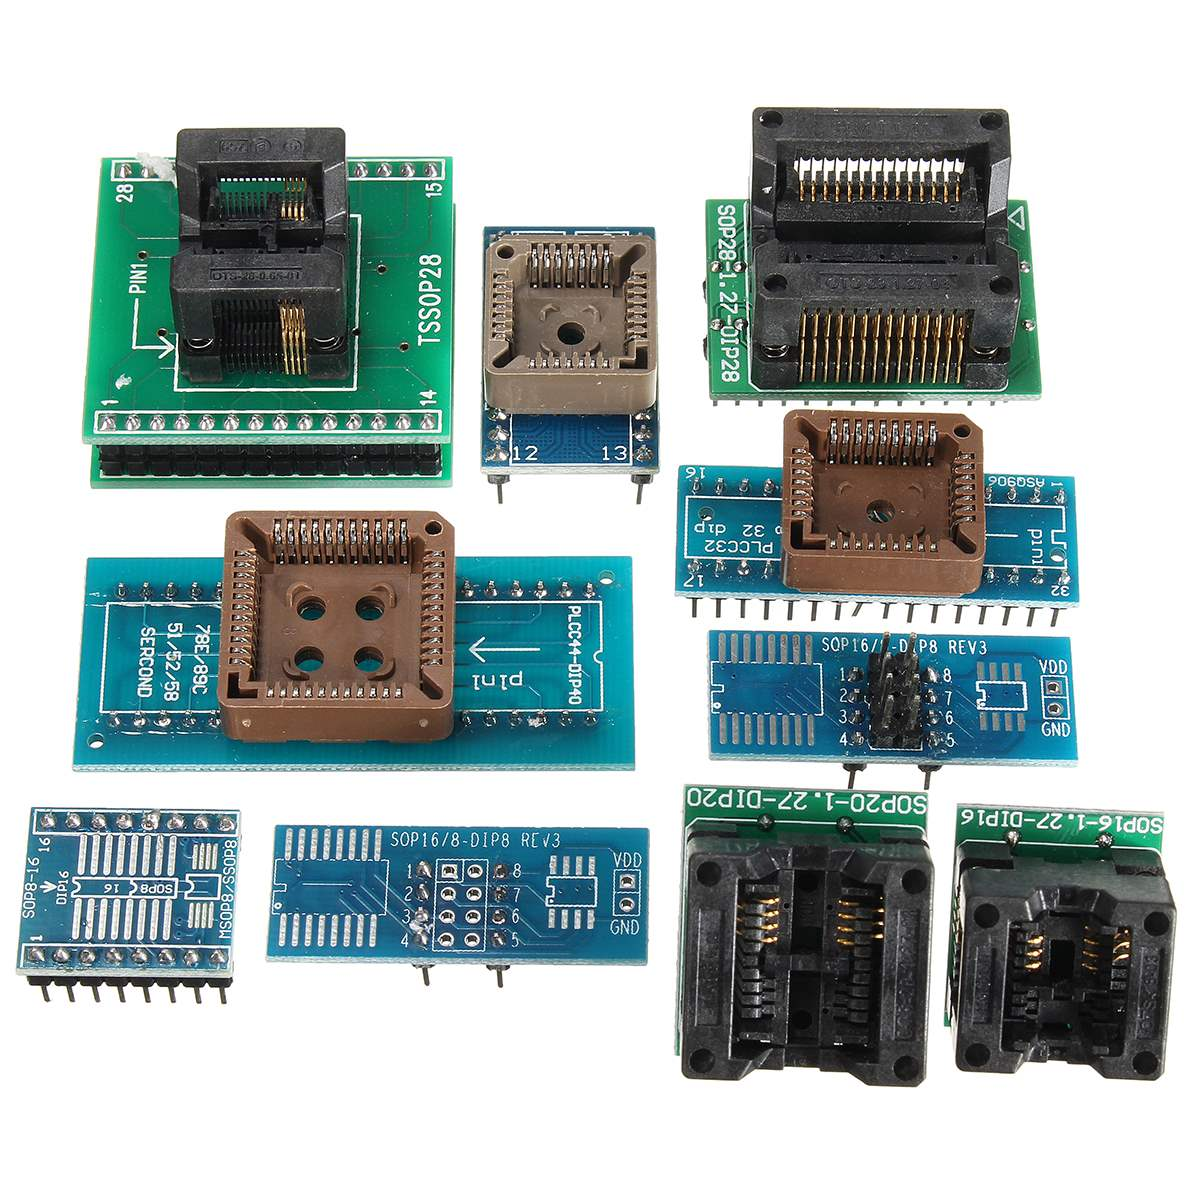 Tl866a Usb Minipro Programmer 10x Adapter Eeprom Flash 8051 Avr Mcu Circuit Spi Icsp In Electronics Stocks From Electronic Components Supplies On